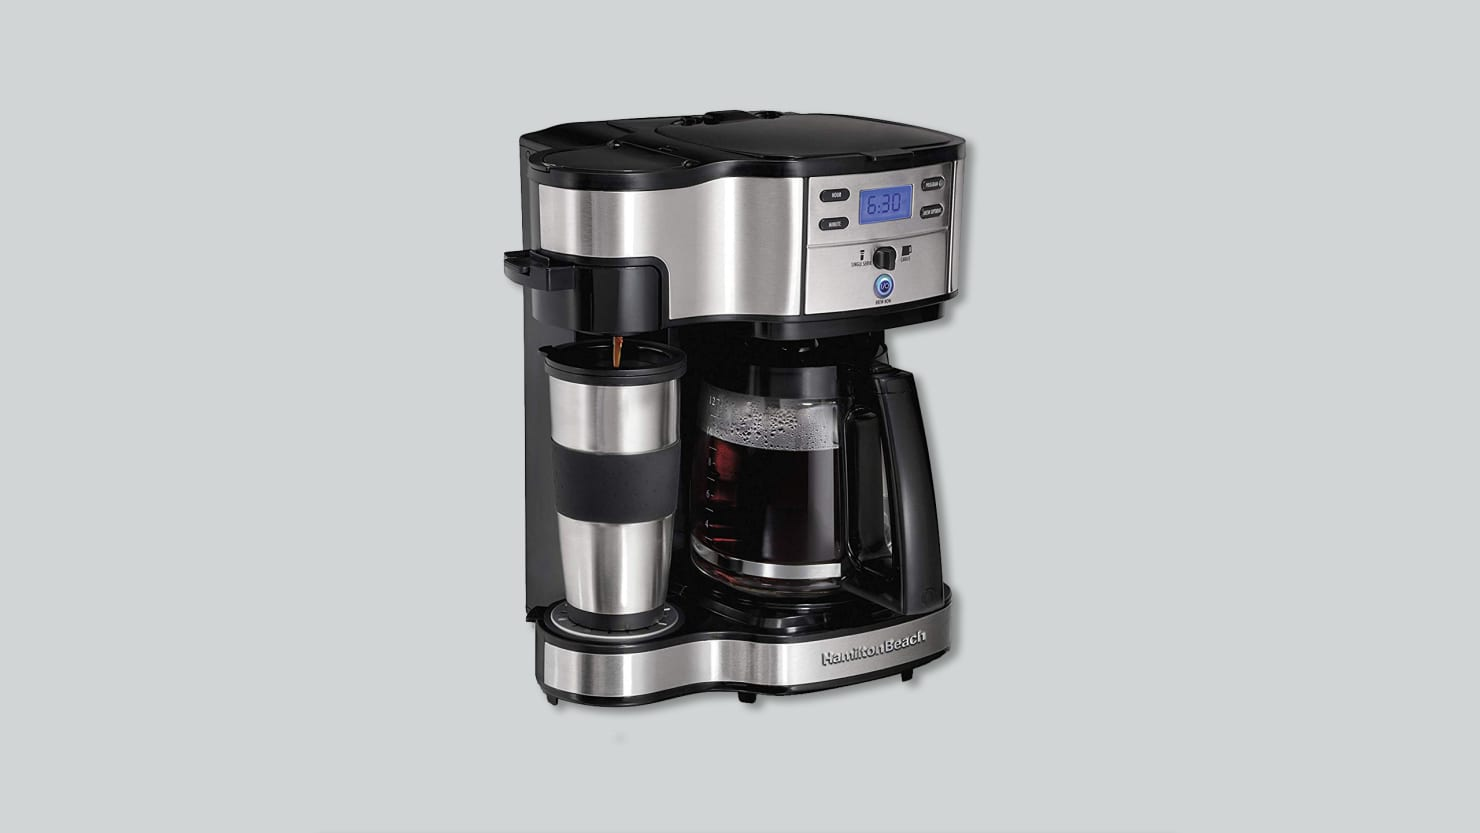 Today Only, Get Hamilton Beach's Top-Rated Coffee Machine for $36